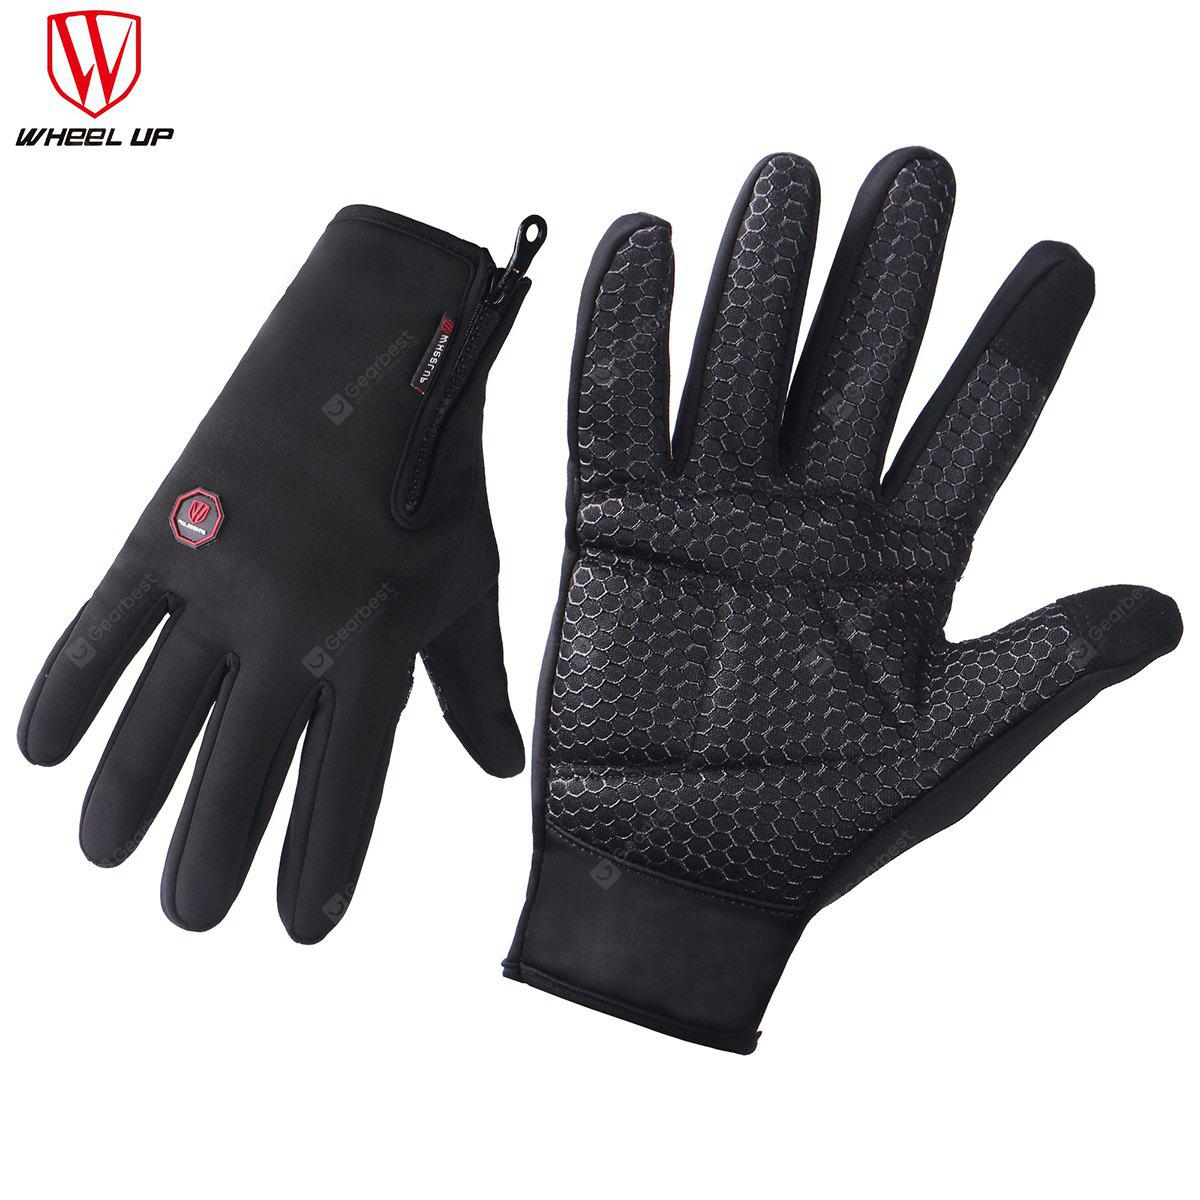 WHEEL UP Touch Screen High QualityCtotton Sweatshirt  Winter Cycling Hiking Skiing Men Women Sport Gloves L Black